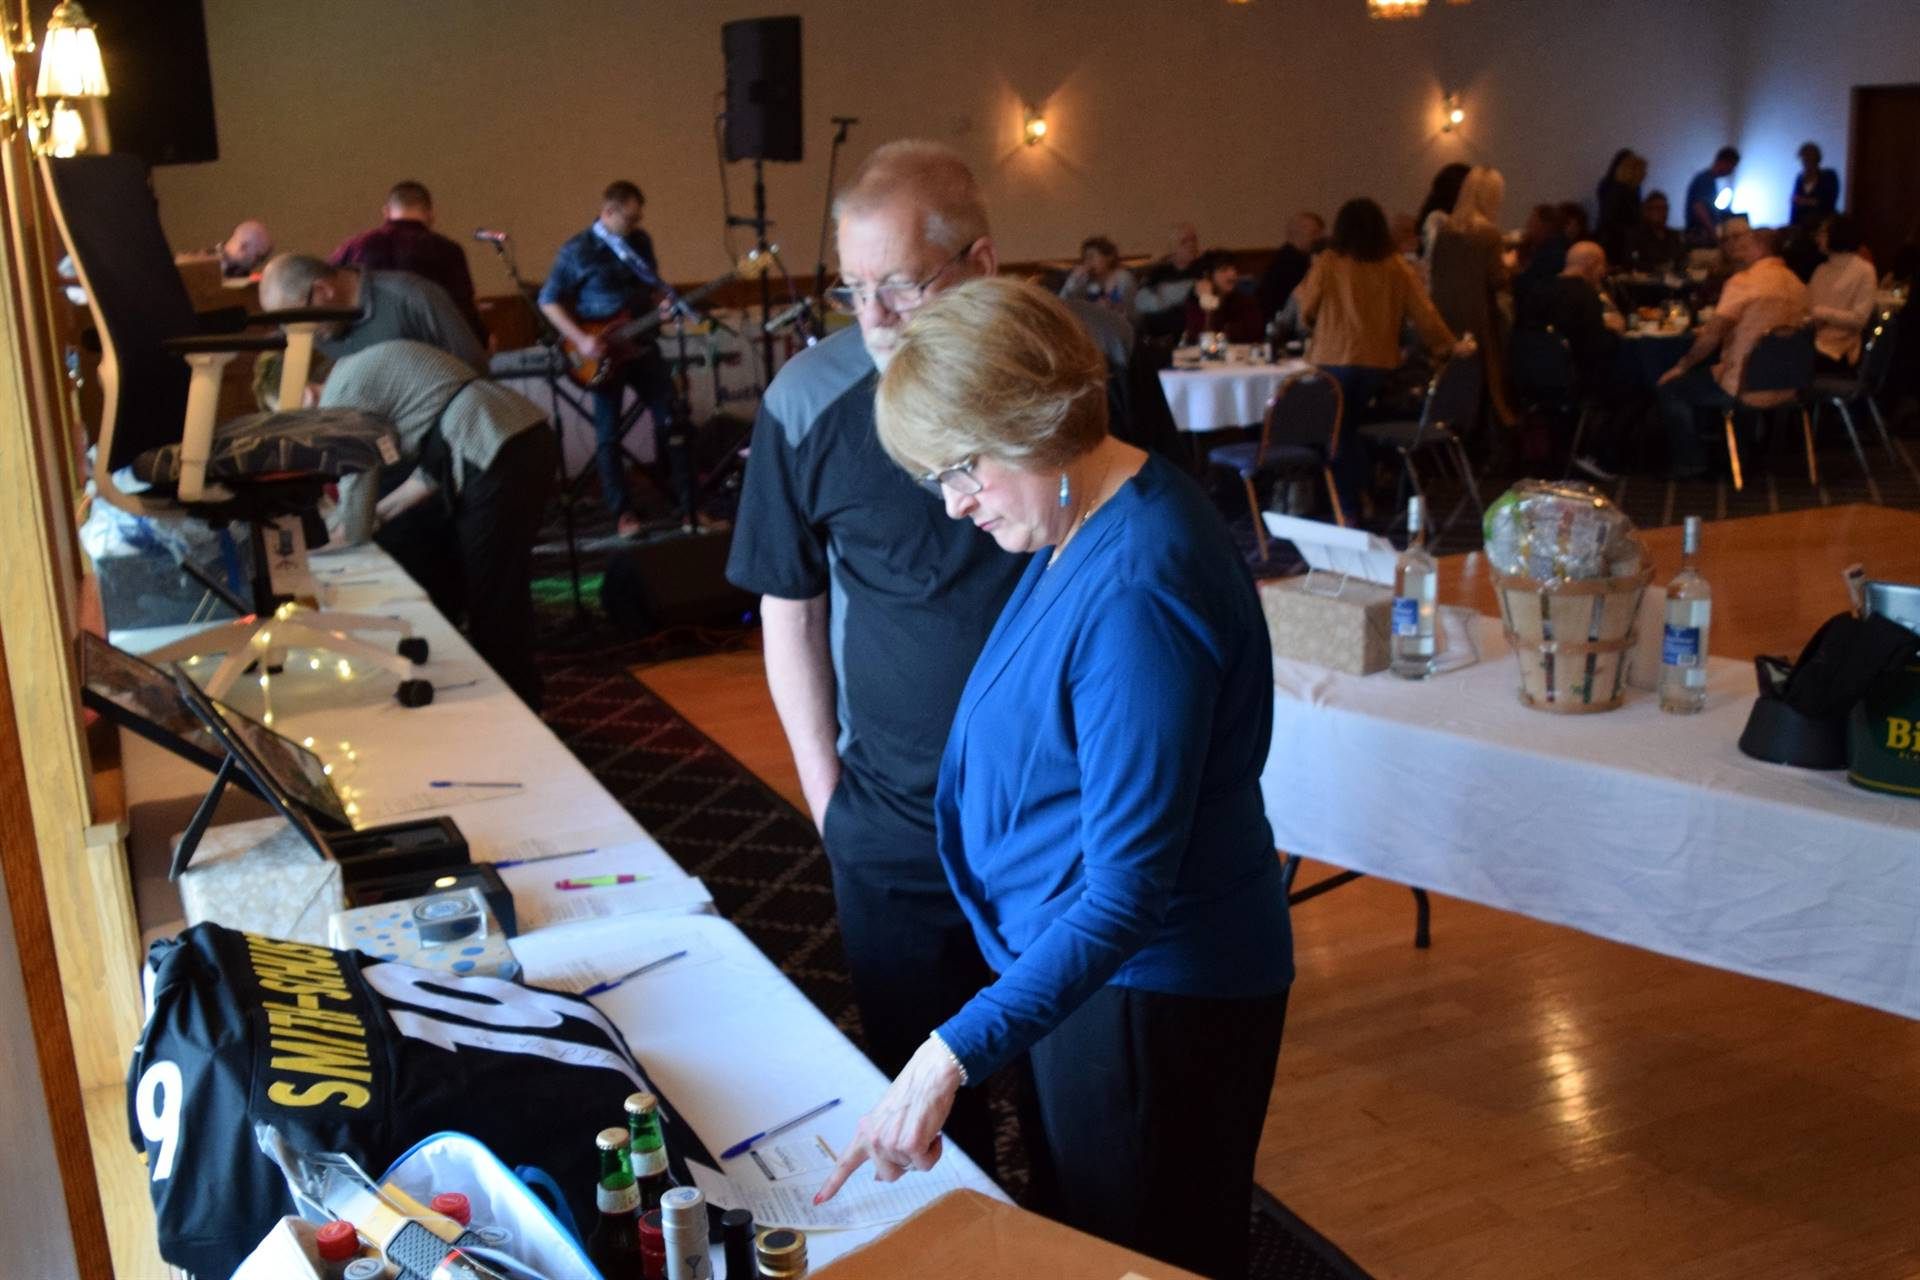 Two people looking at table of auction items